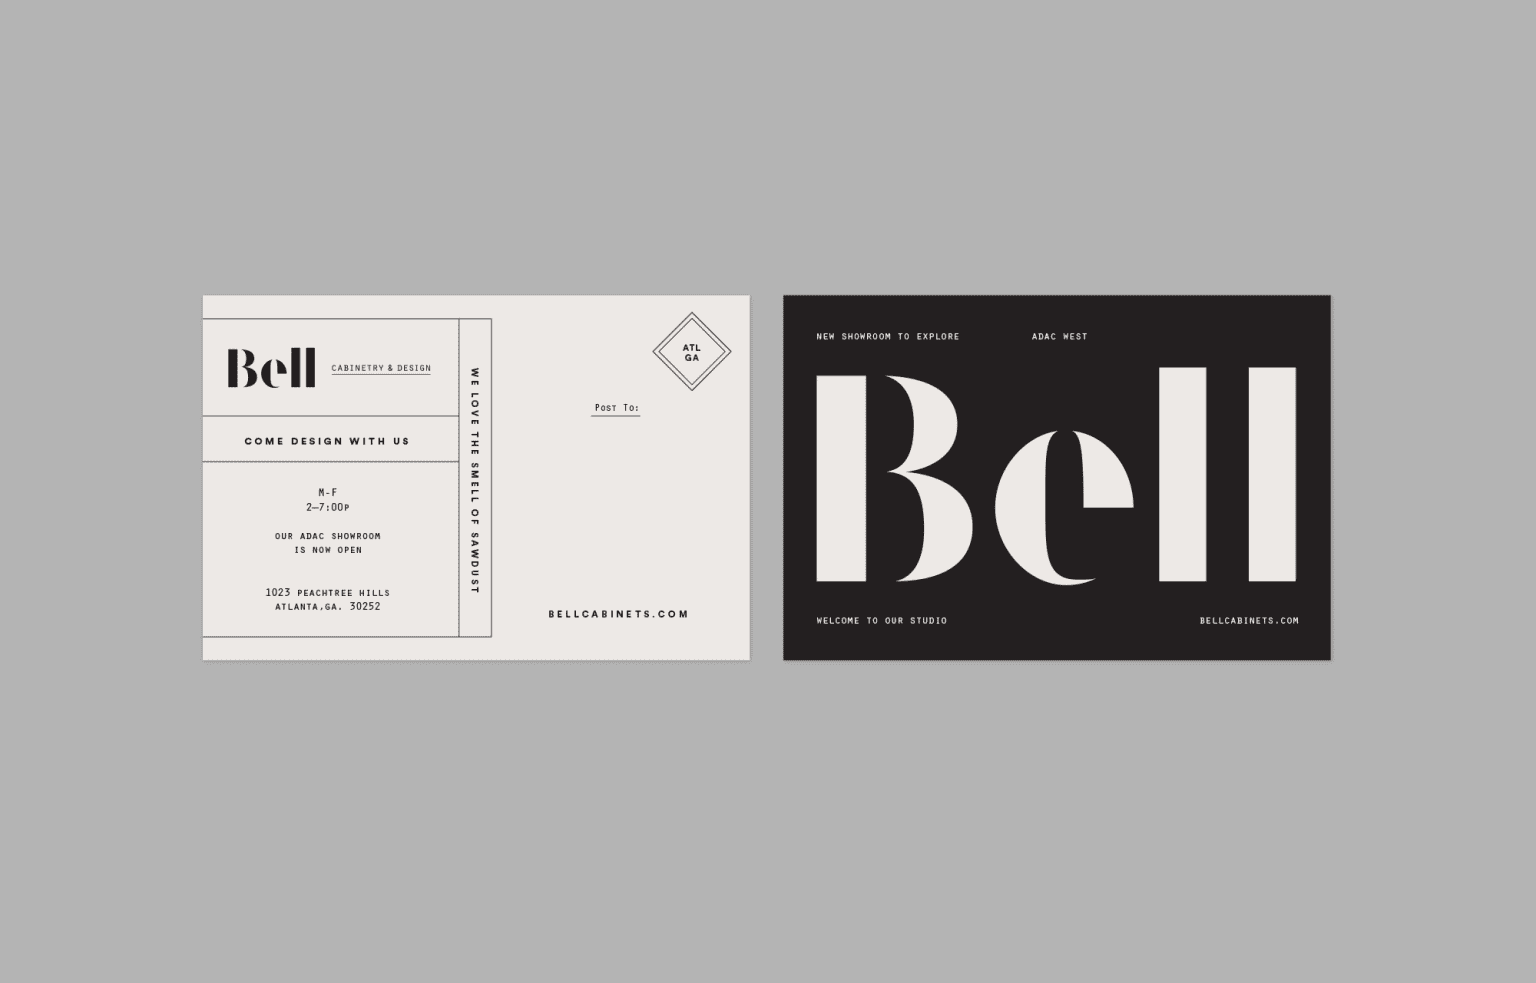 Bell Cabinetry & Design - Rebrand